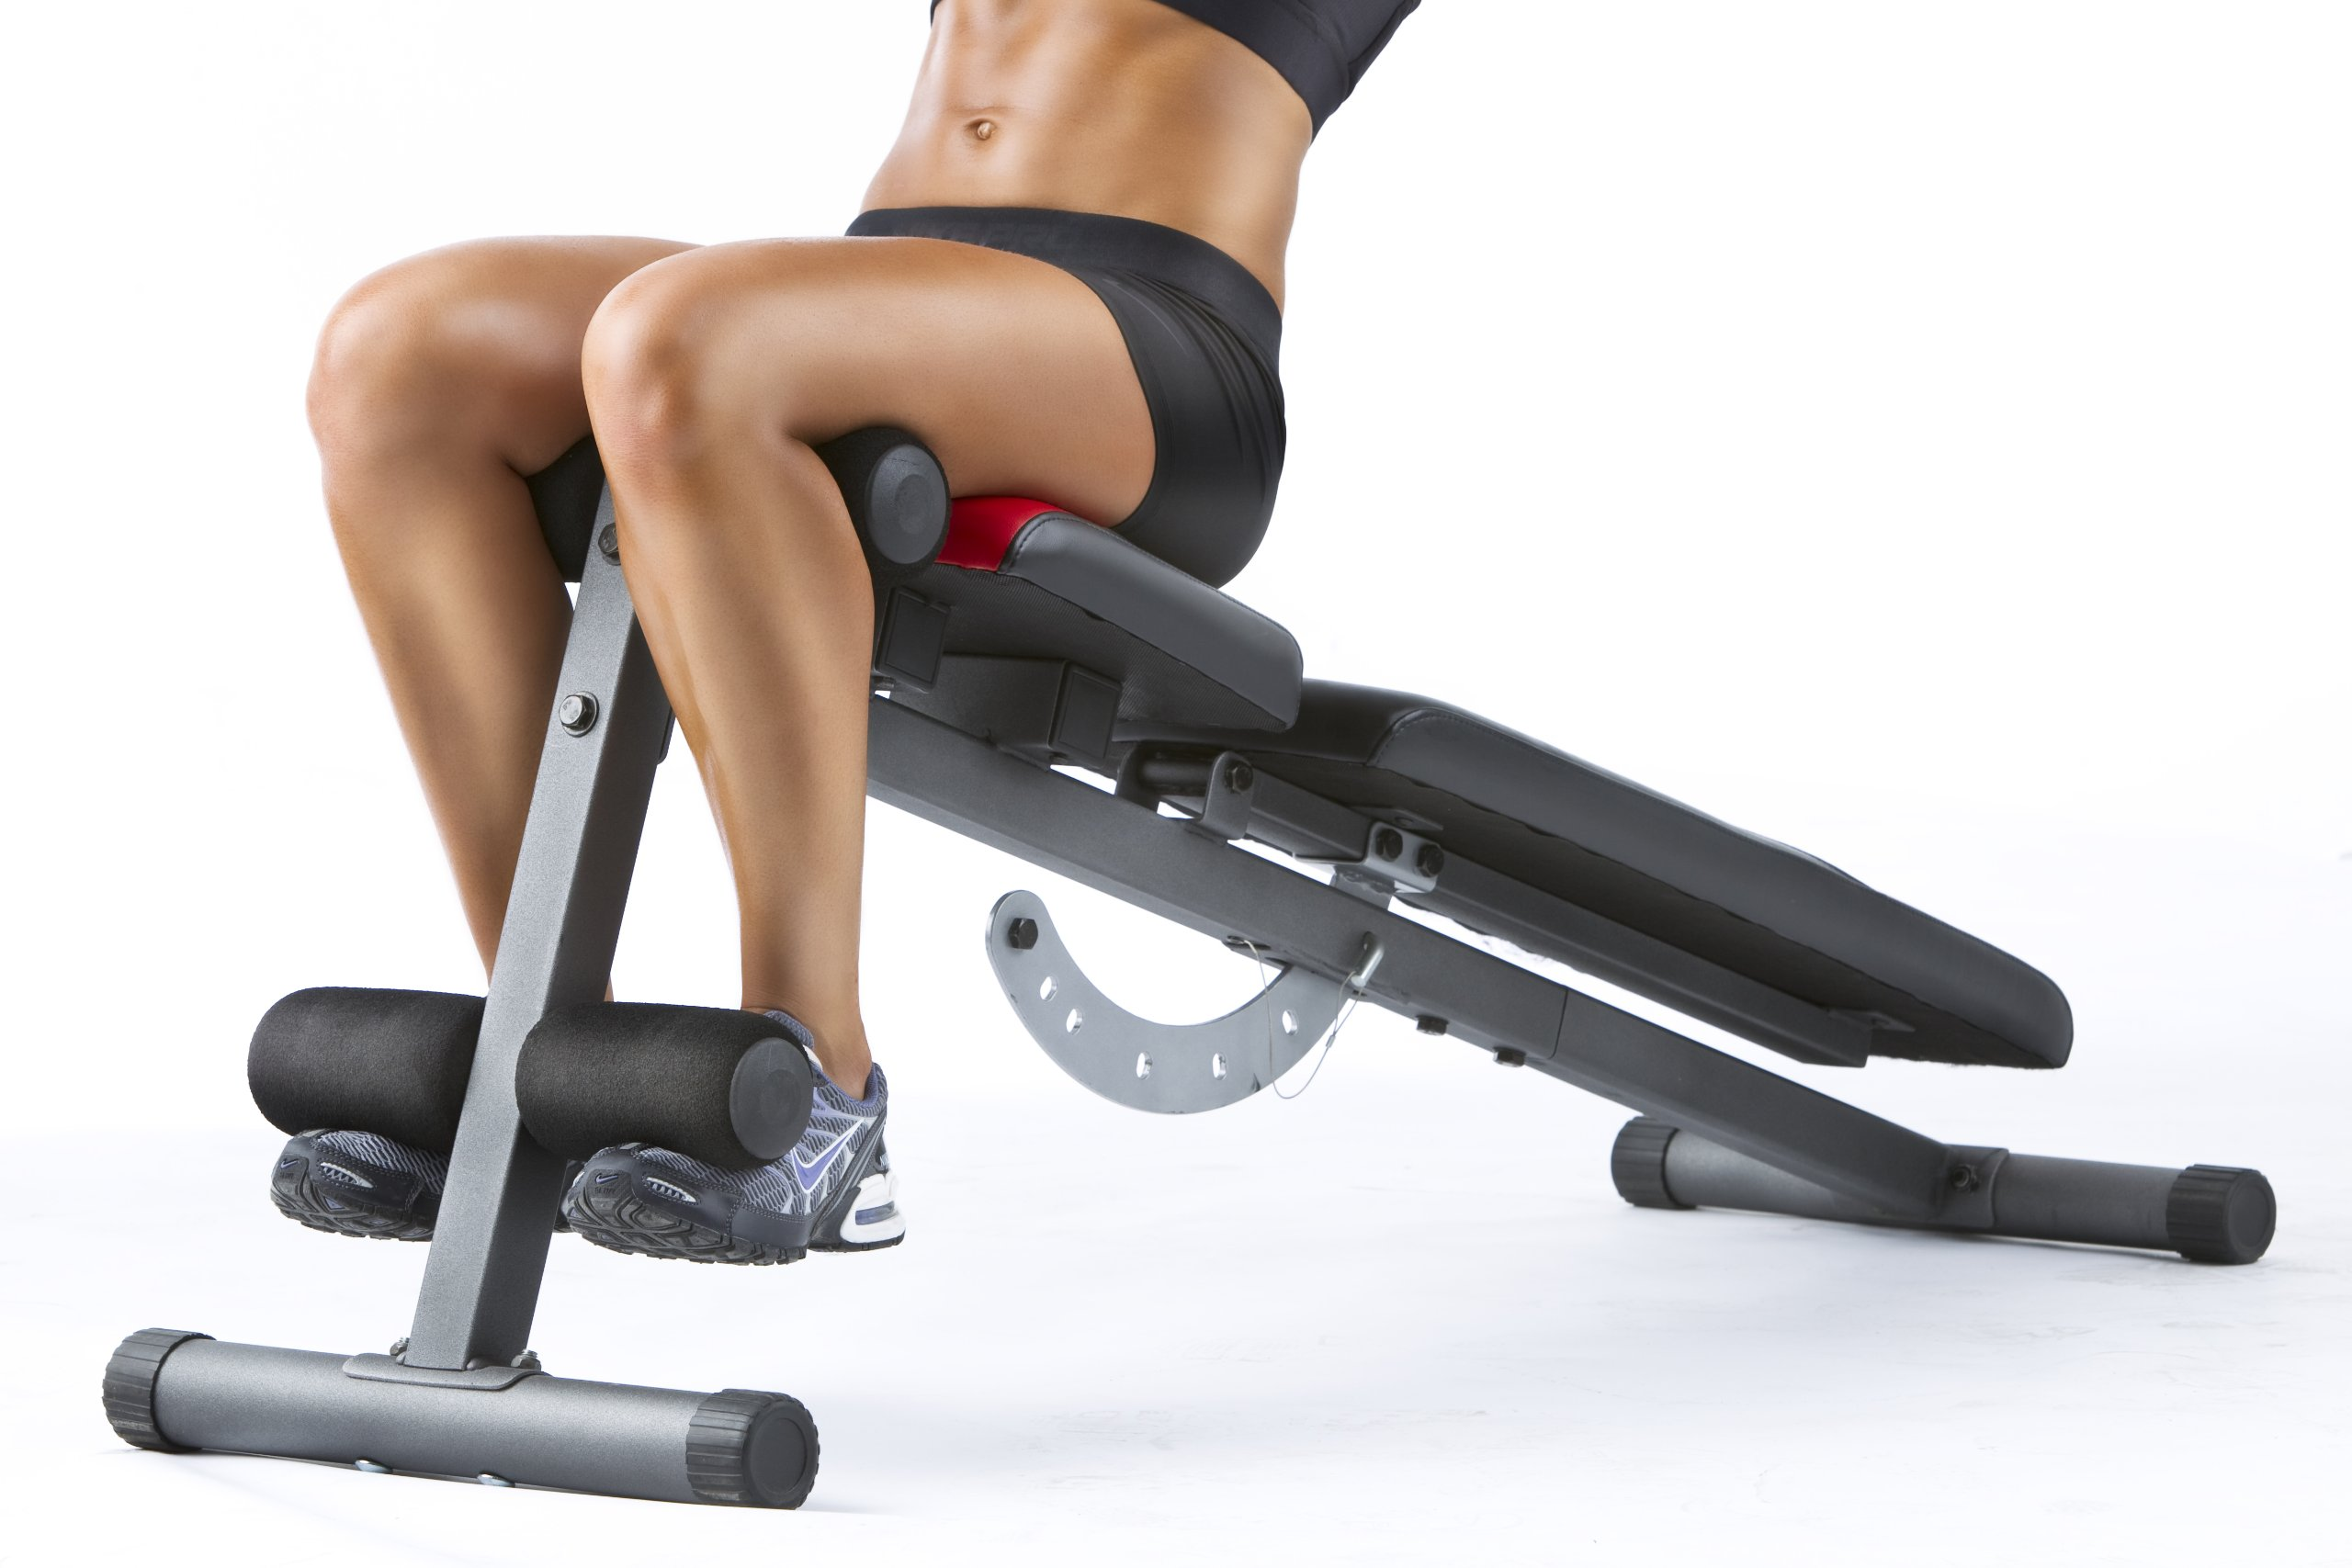 r decline incline s bench mans poor comments homegym weight man inclinedecline